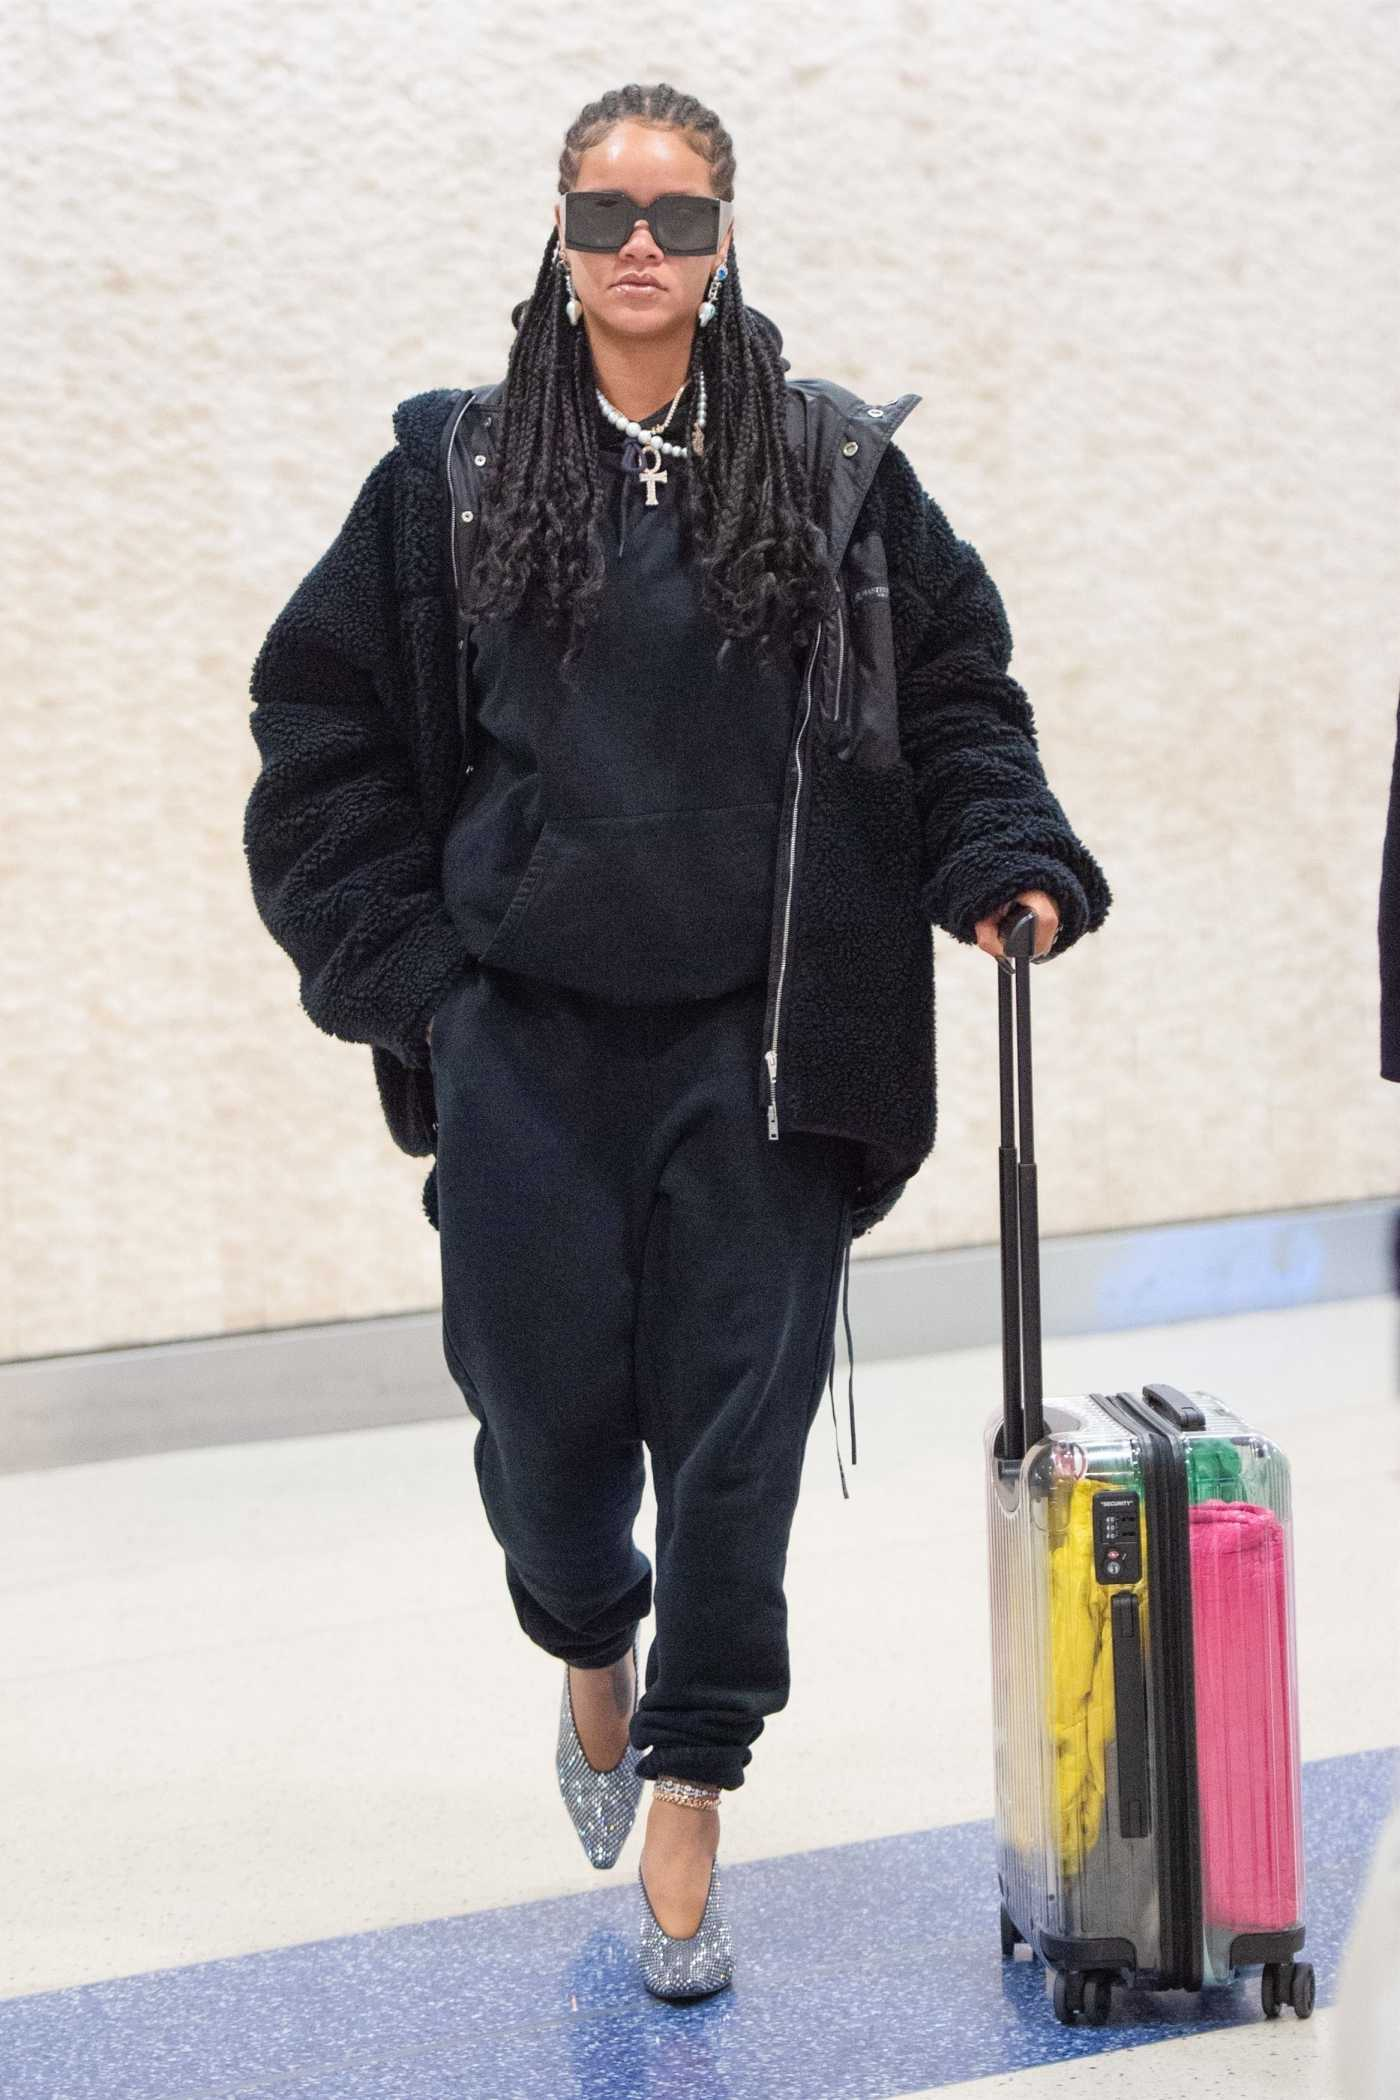 Rihanna in a Black Sweatsuit Arrives at JFK Airport in New York City 01/16/2020